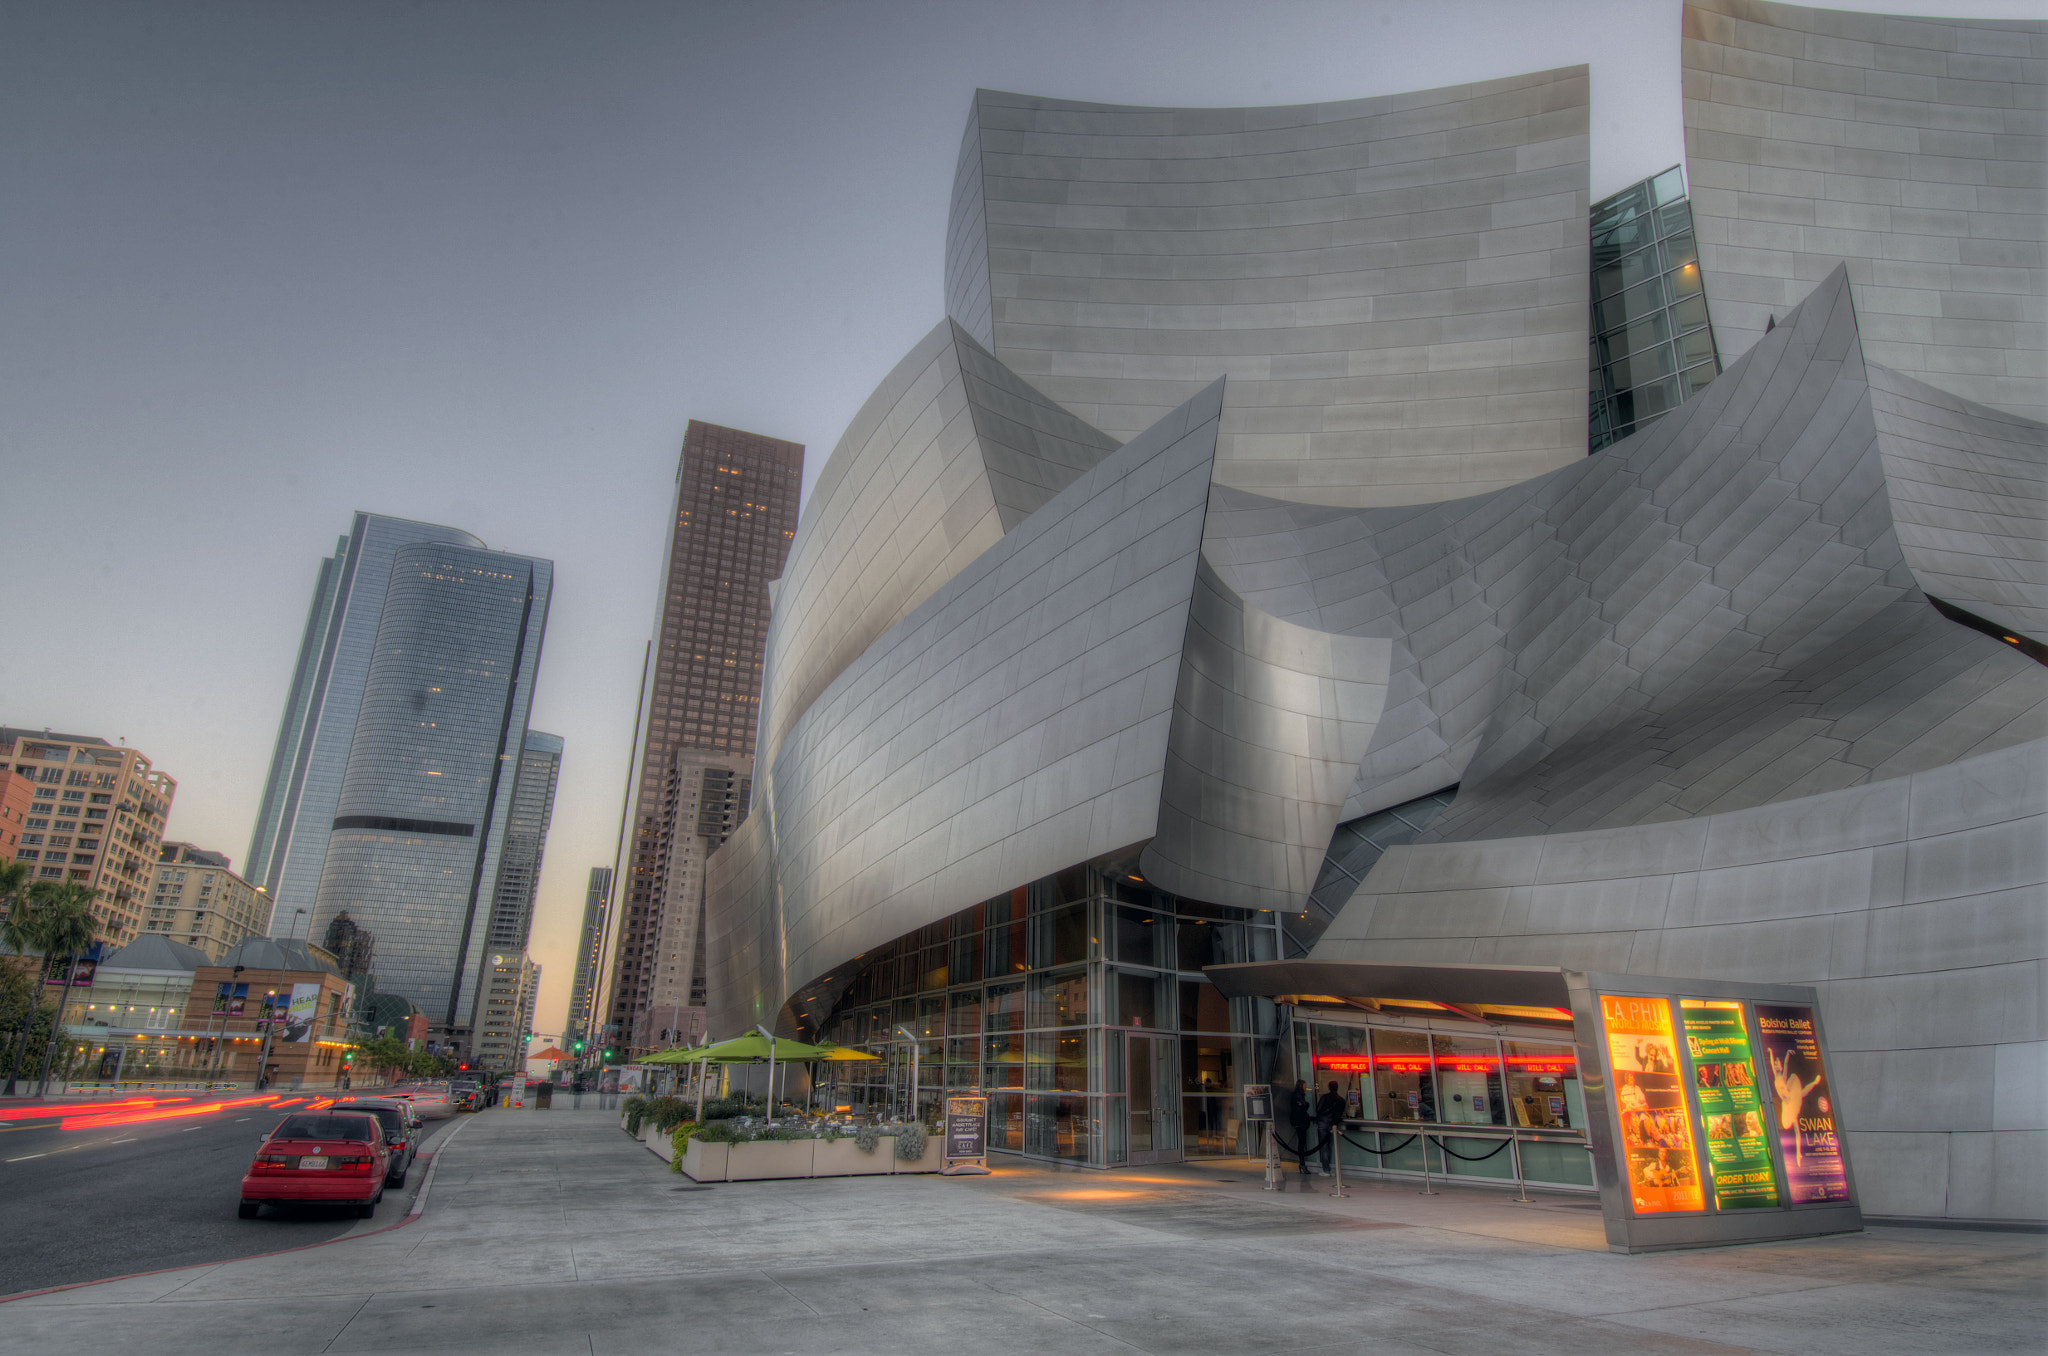 Photograph Disney Concert Hall by Droobie Tuesday on 500px